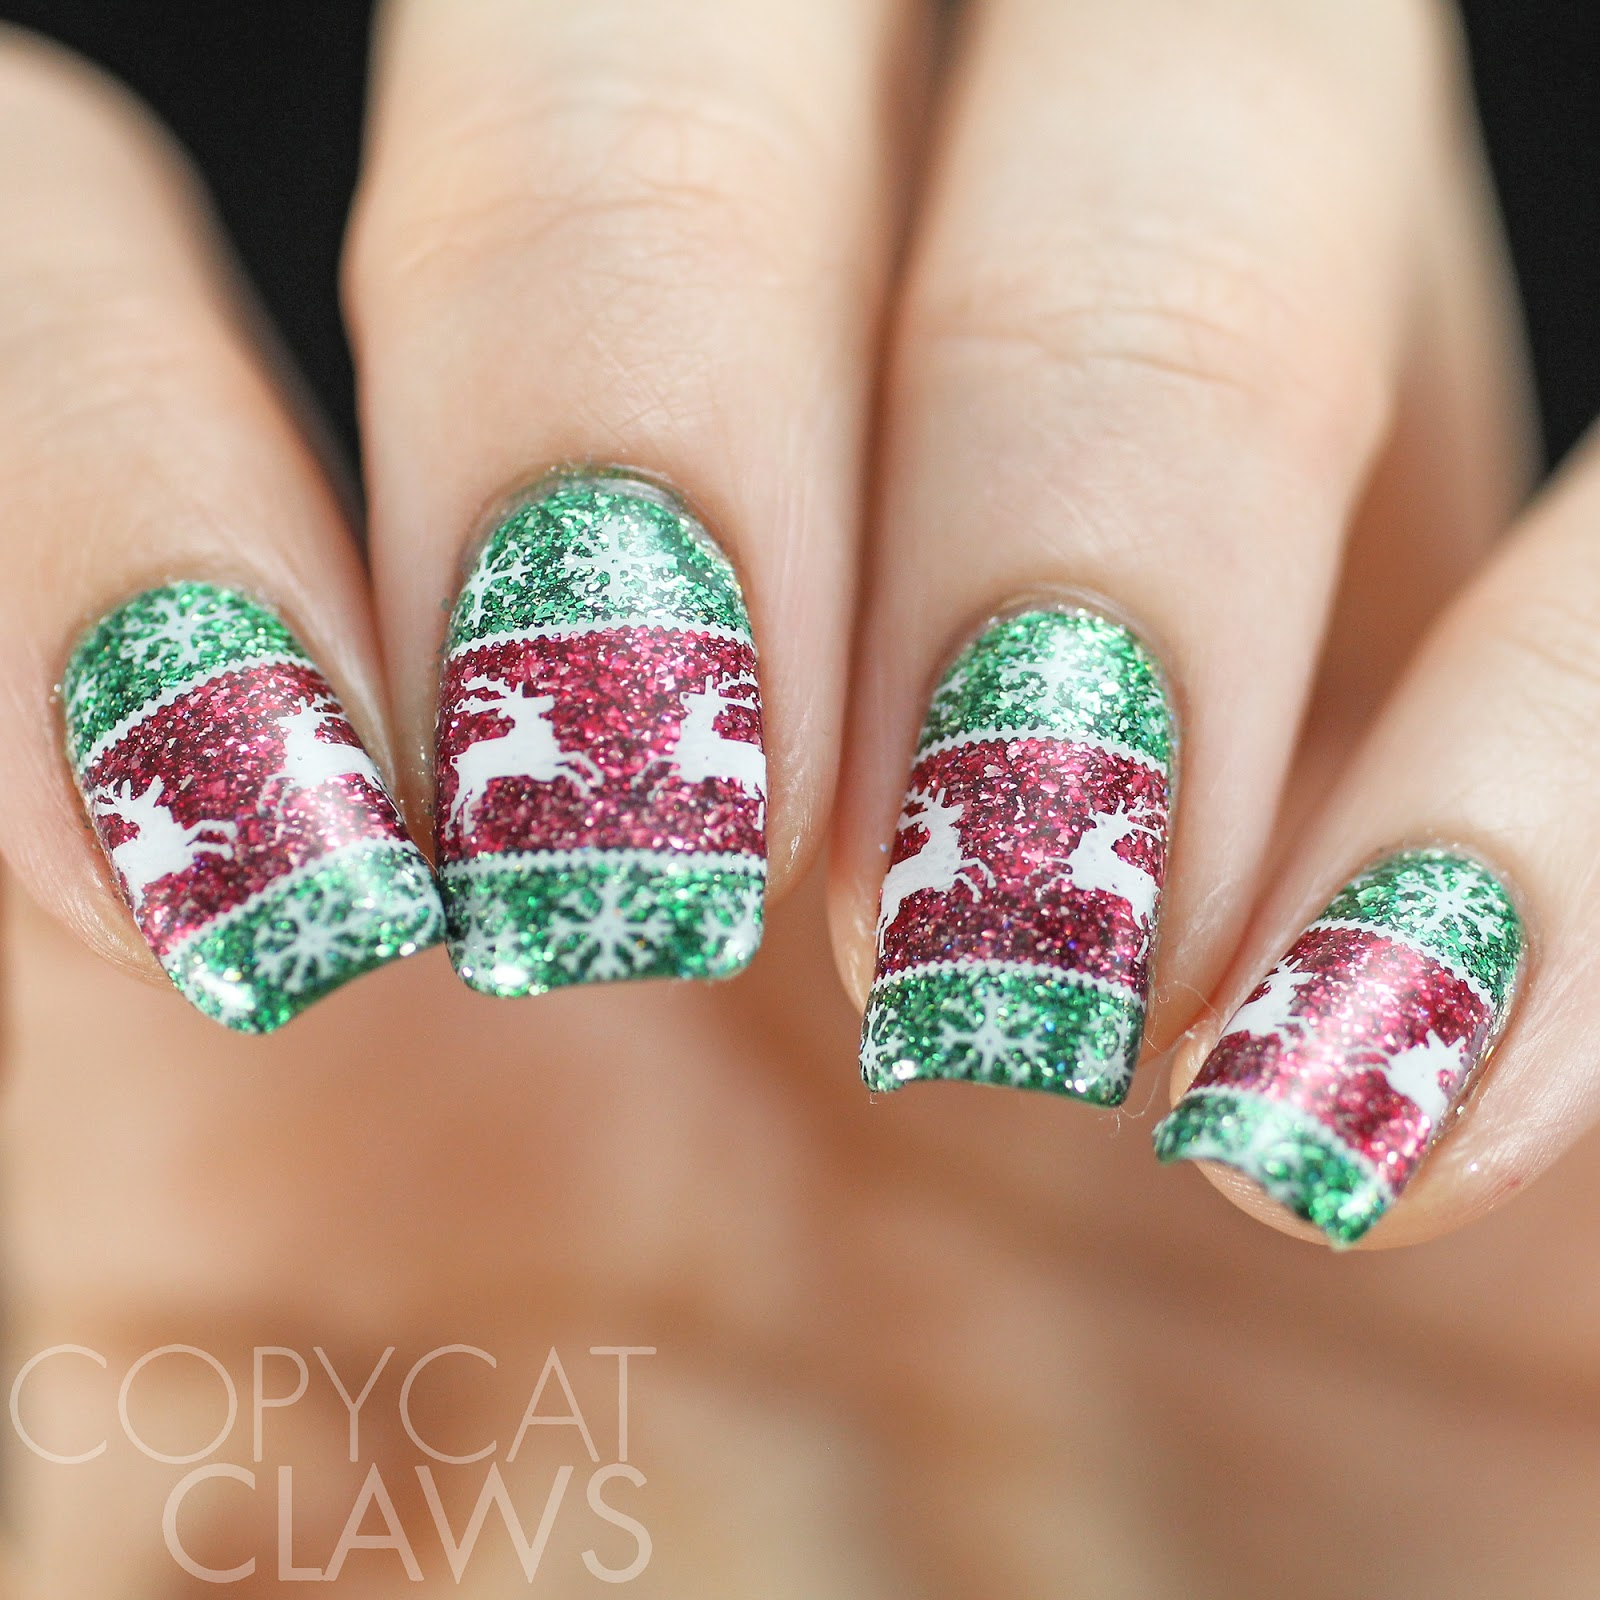 Copycat Claws: Sunday Stamping - Ugly Christmas Sweater Nails